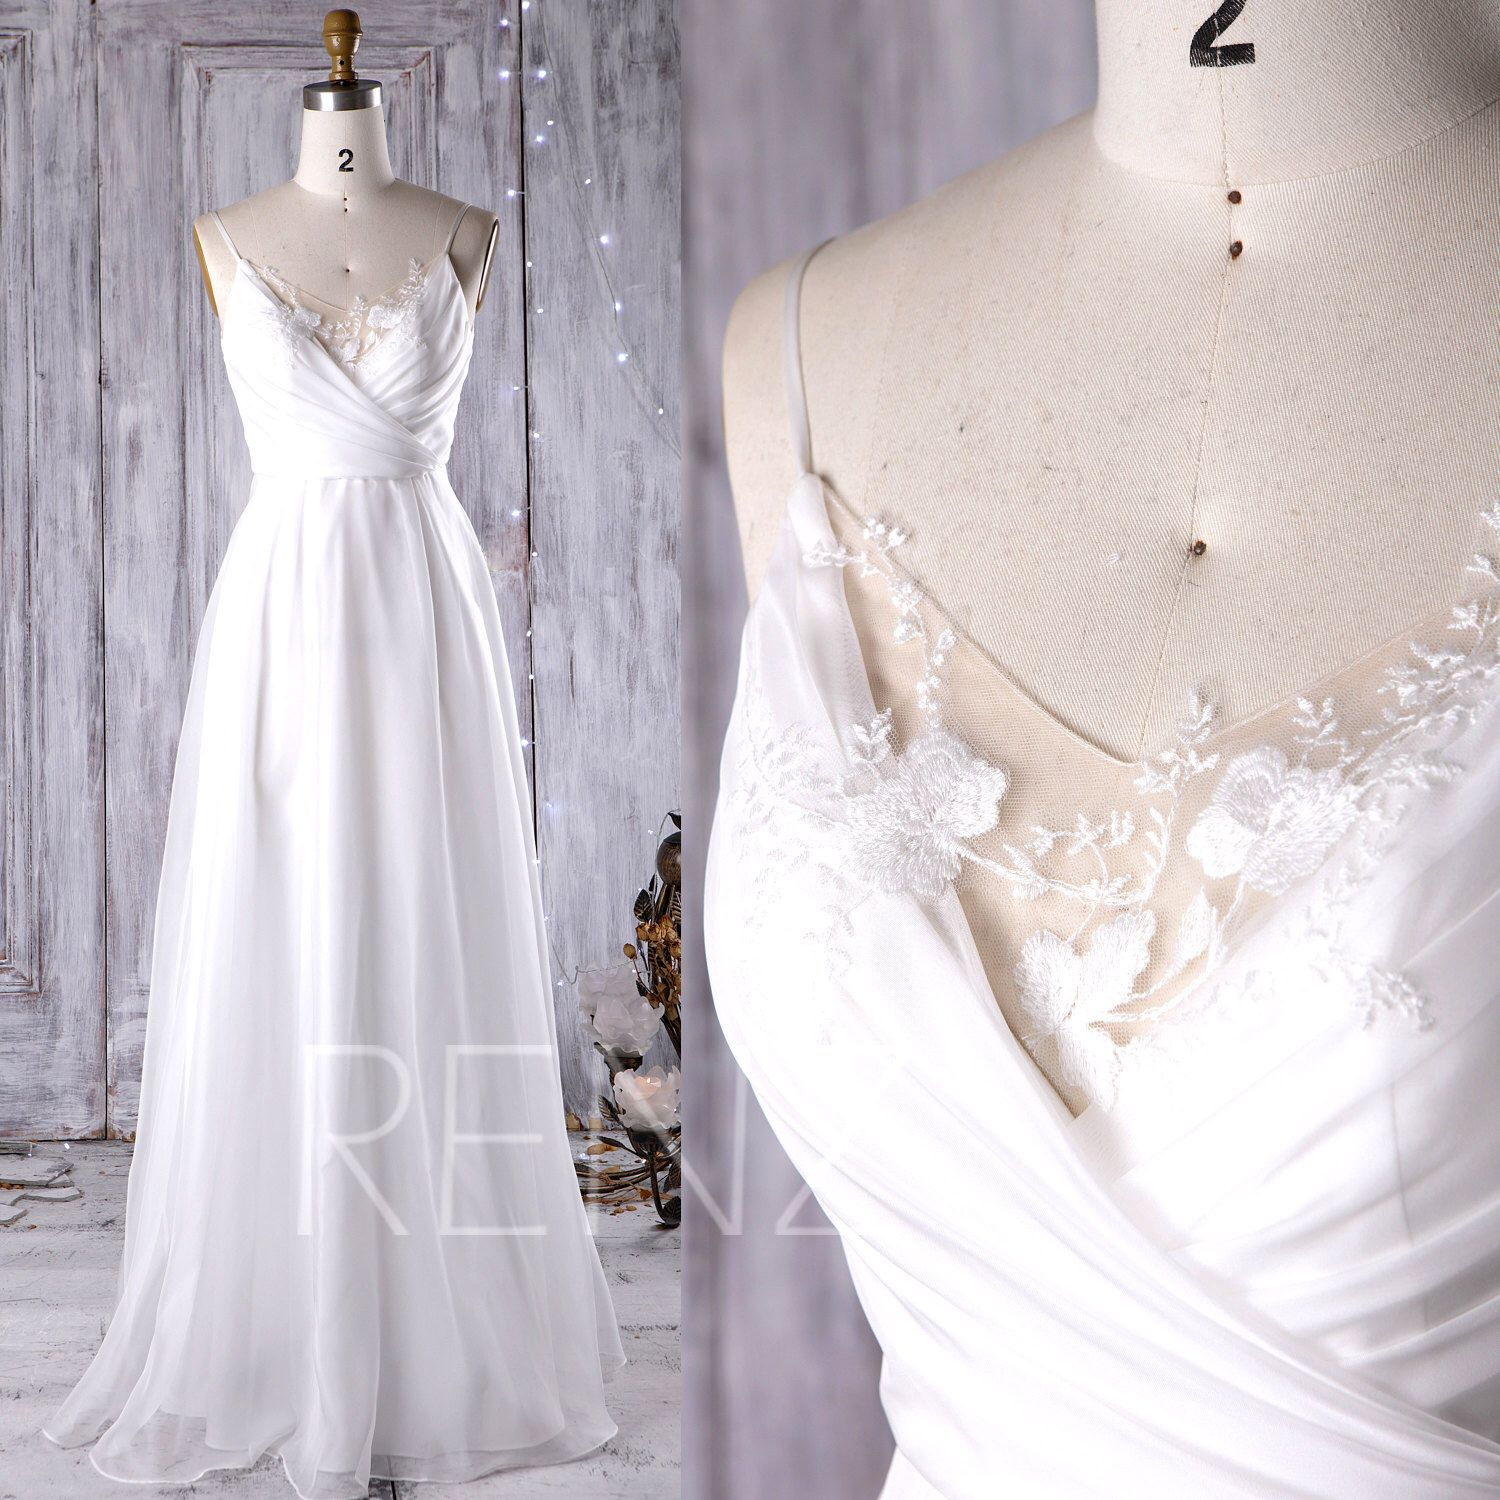 Off white chiffon bridesmaid dress v neck lace wedding dress